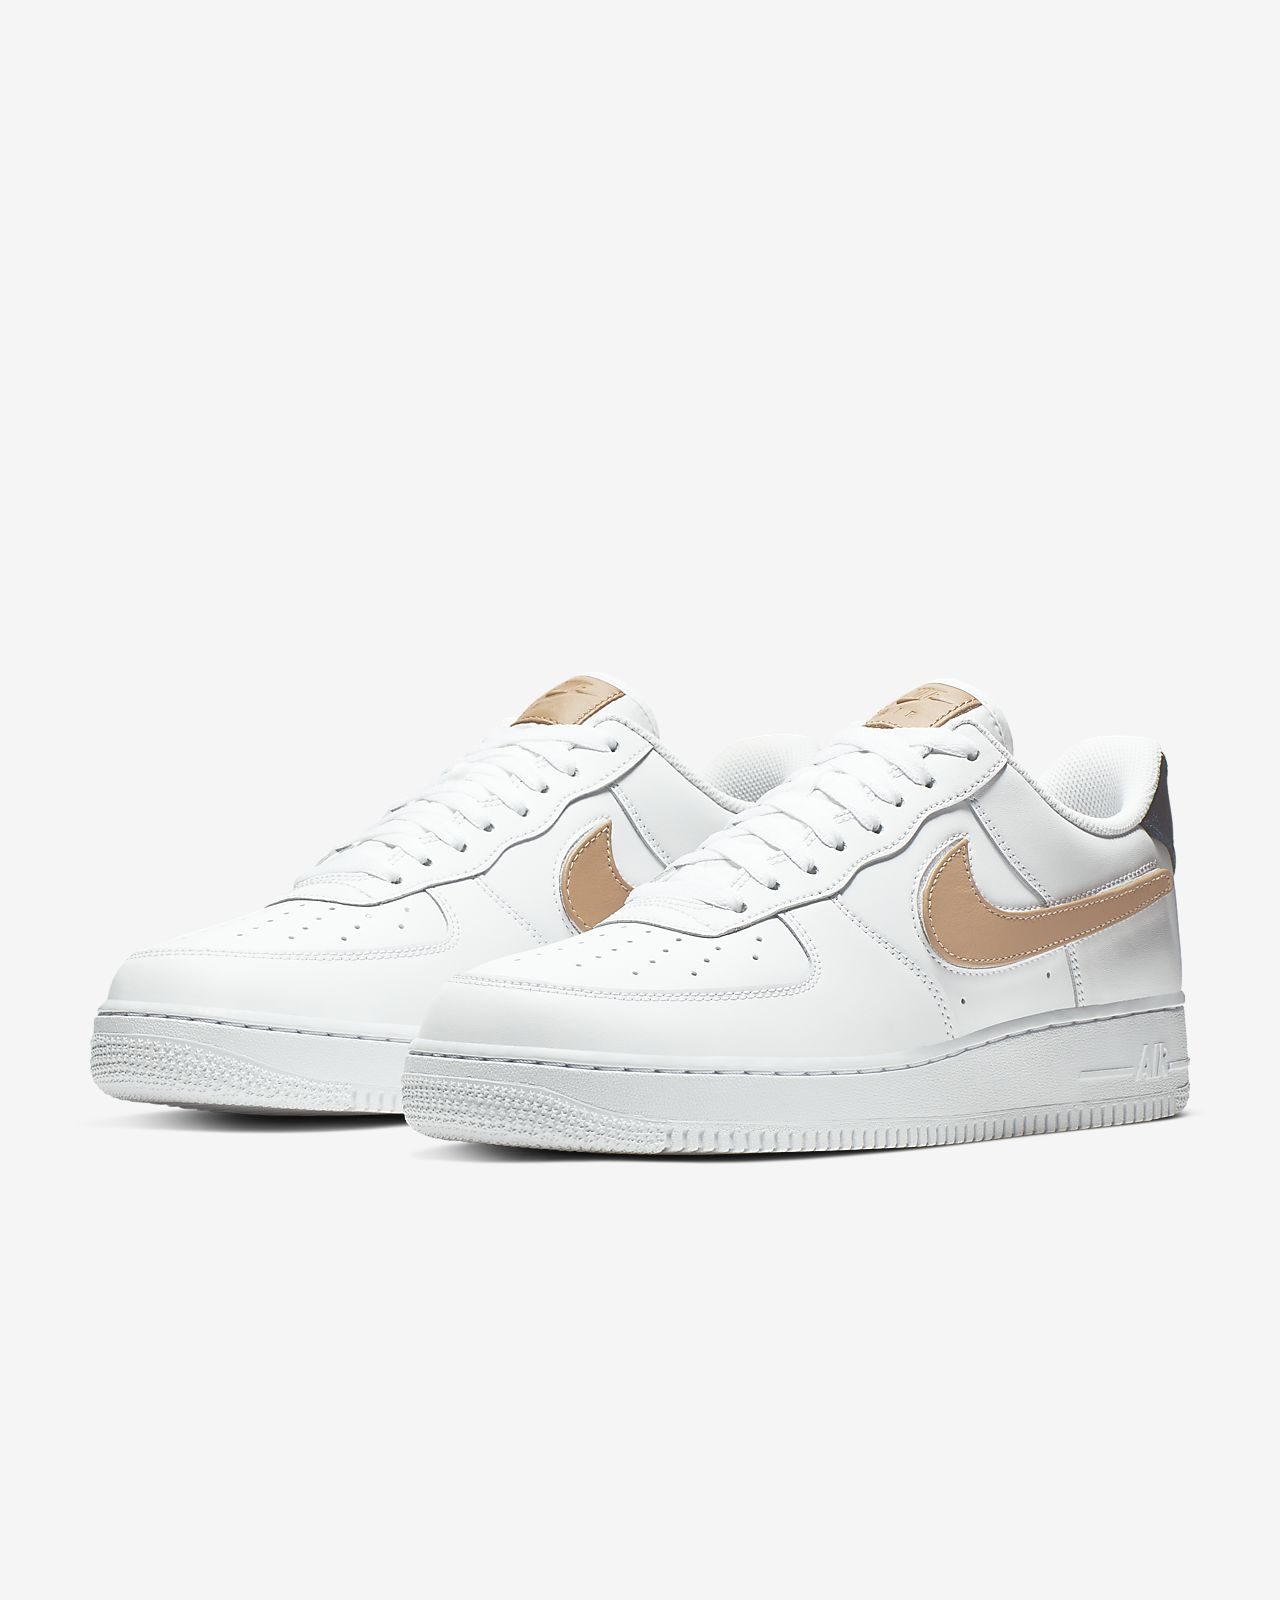 Nike Air Force 1 '07 LV8 3 Removable Swoosh Men's Shoe